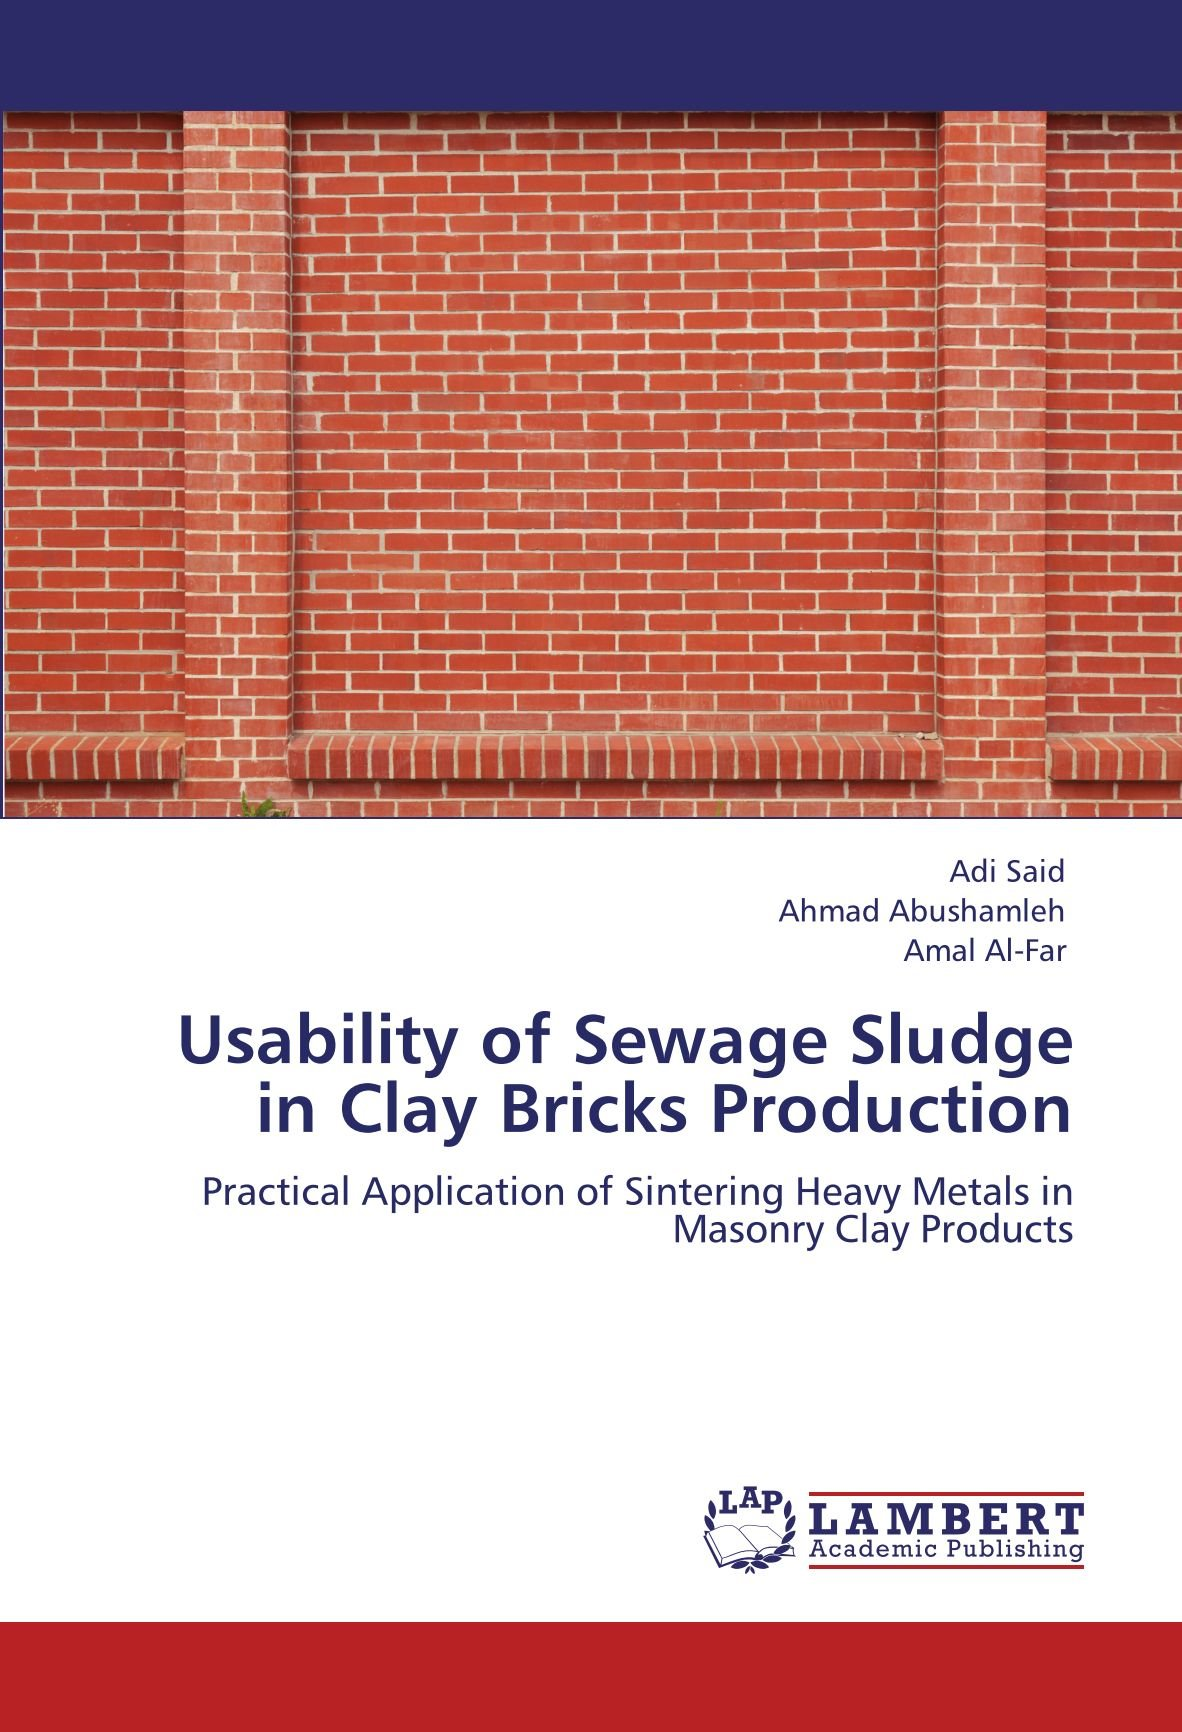 Download Usability of Sewage Sludge in Clay Bricks Production: Practical Application of Sintering Heavy Metals in Masonry Clay Products PDF